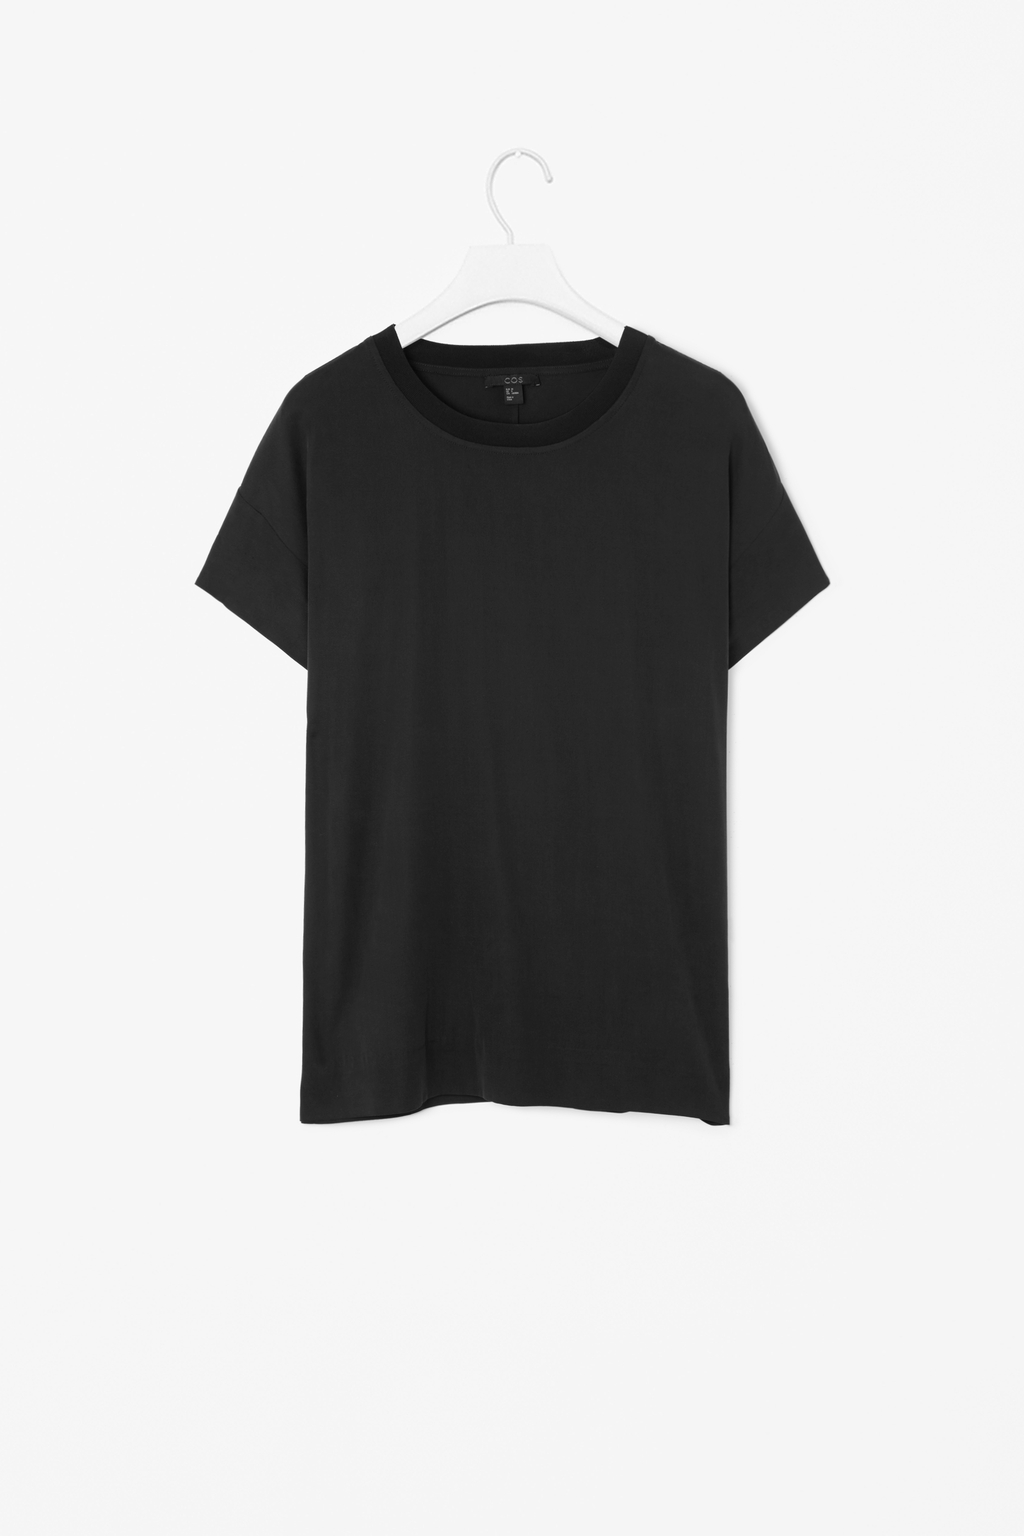 Boxy Silk T Shirt - pattern: plain; style: t-shirt; predominant colour: black; occasions: casual, evening; length: standard; fit: loose; neckline: crew; sleeve length: short sleeve; sleeve style: standard; texture group: silky - light; pattern type: fabric; fibres: silk - stretch; season: s/s 2014